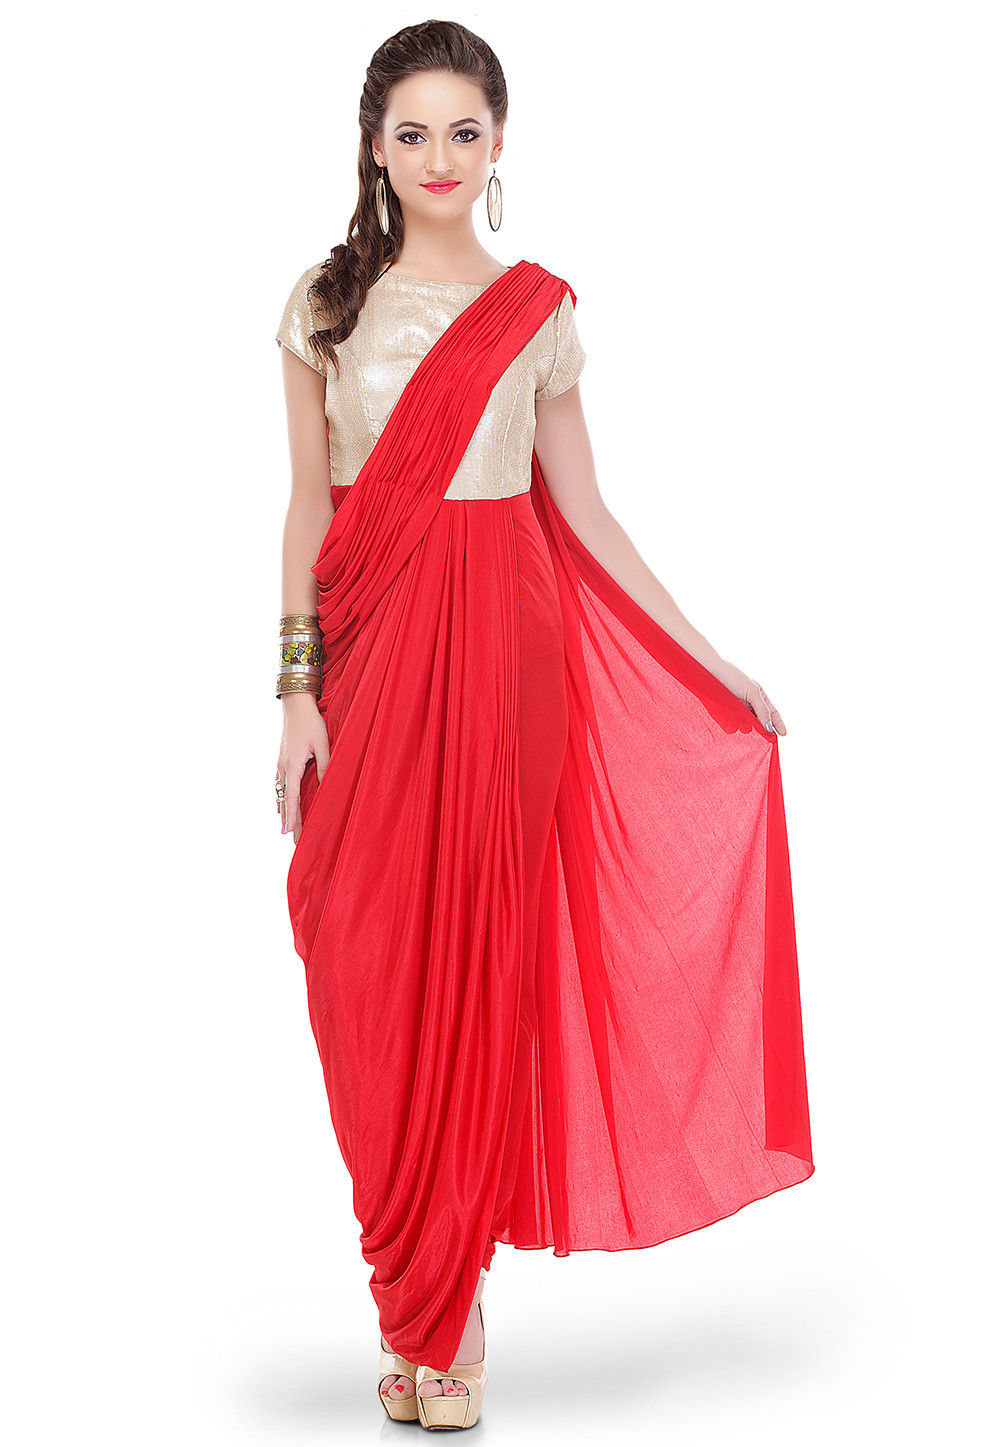 Sequins Embroidered Lycra Draping Dress in Red and Golden